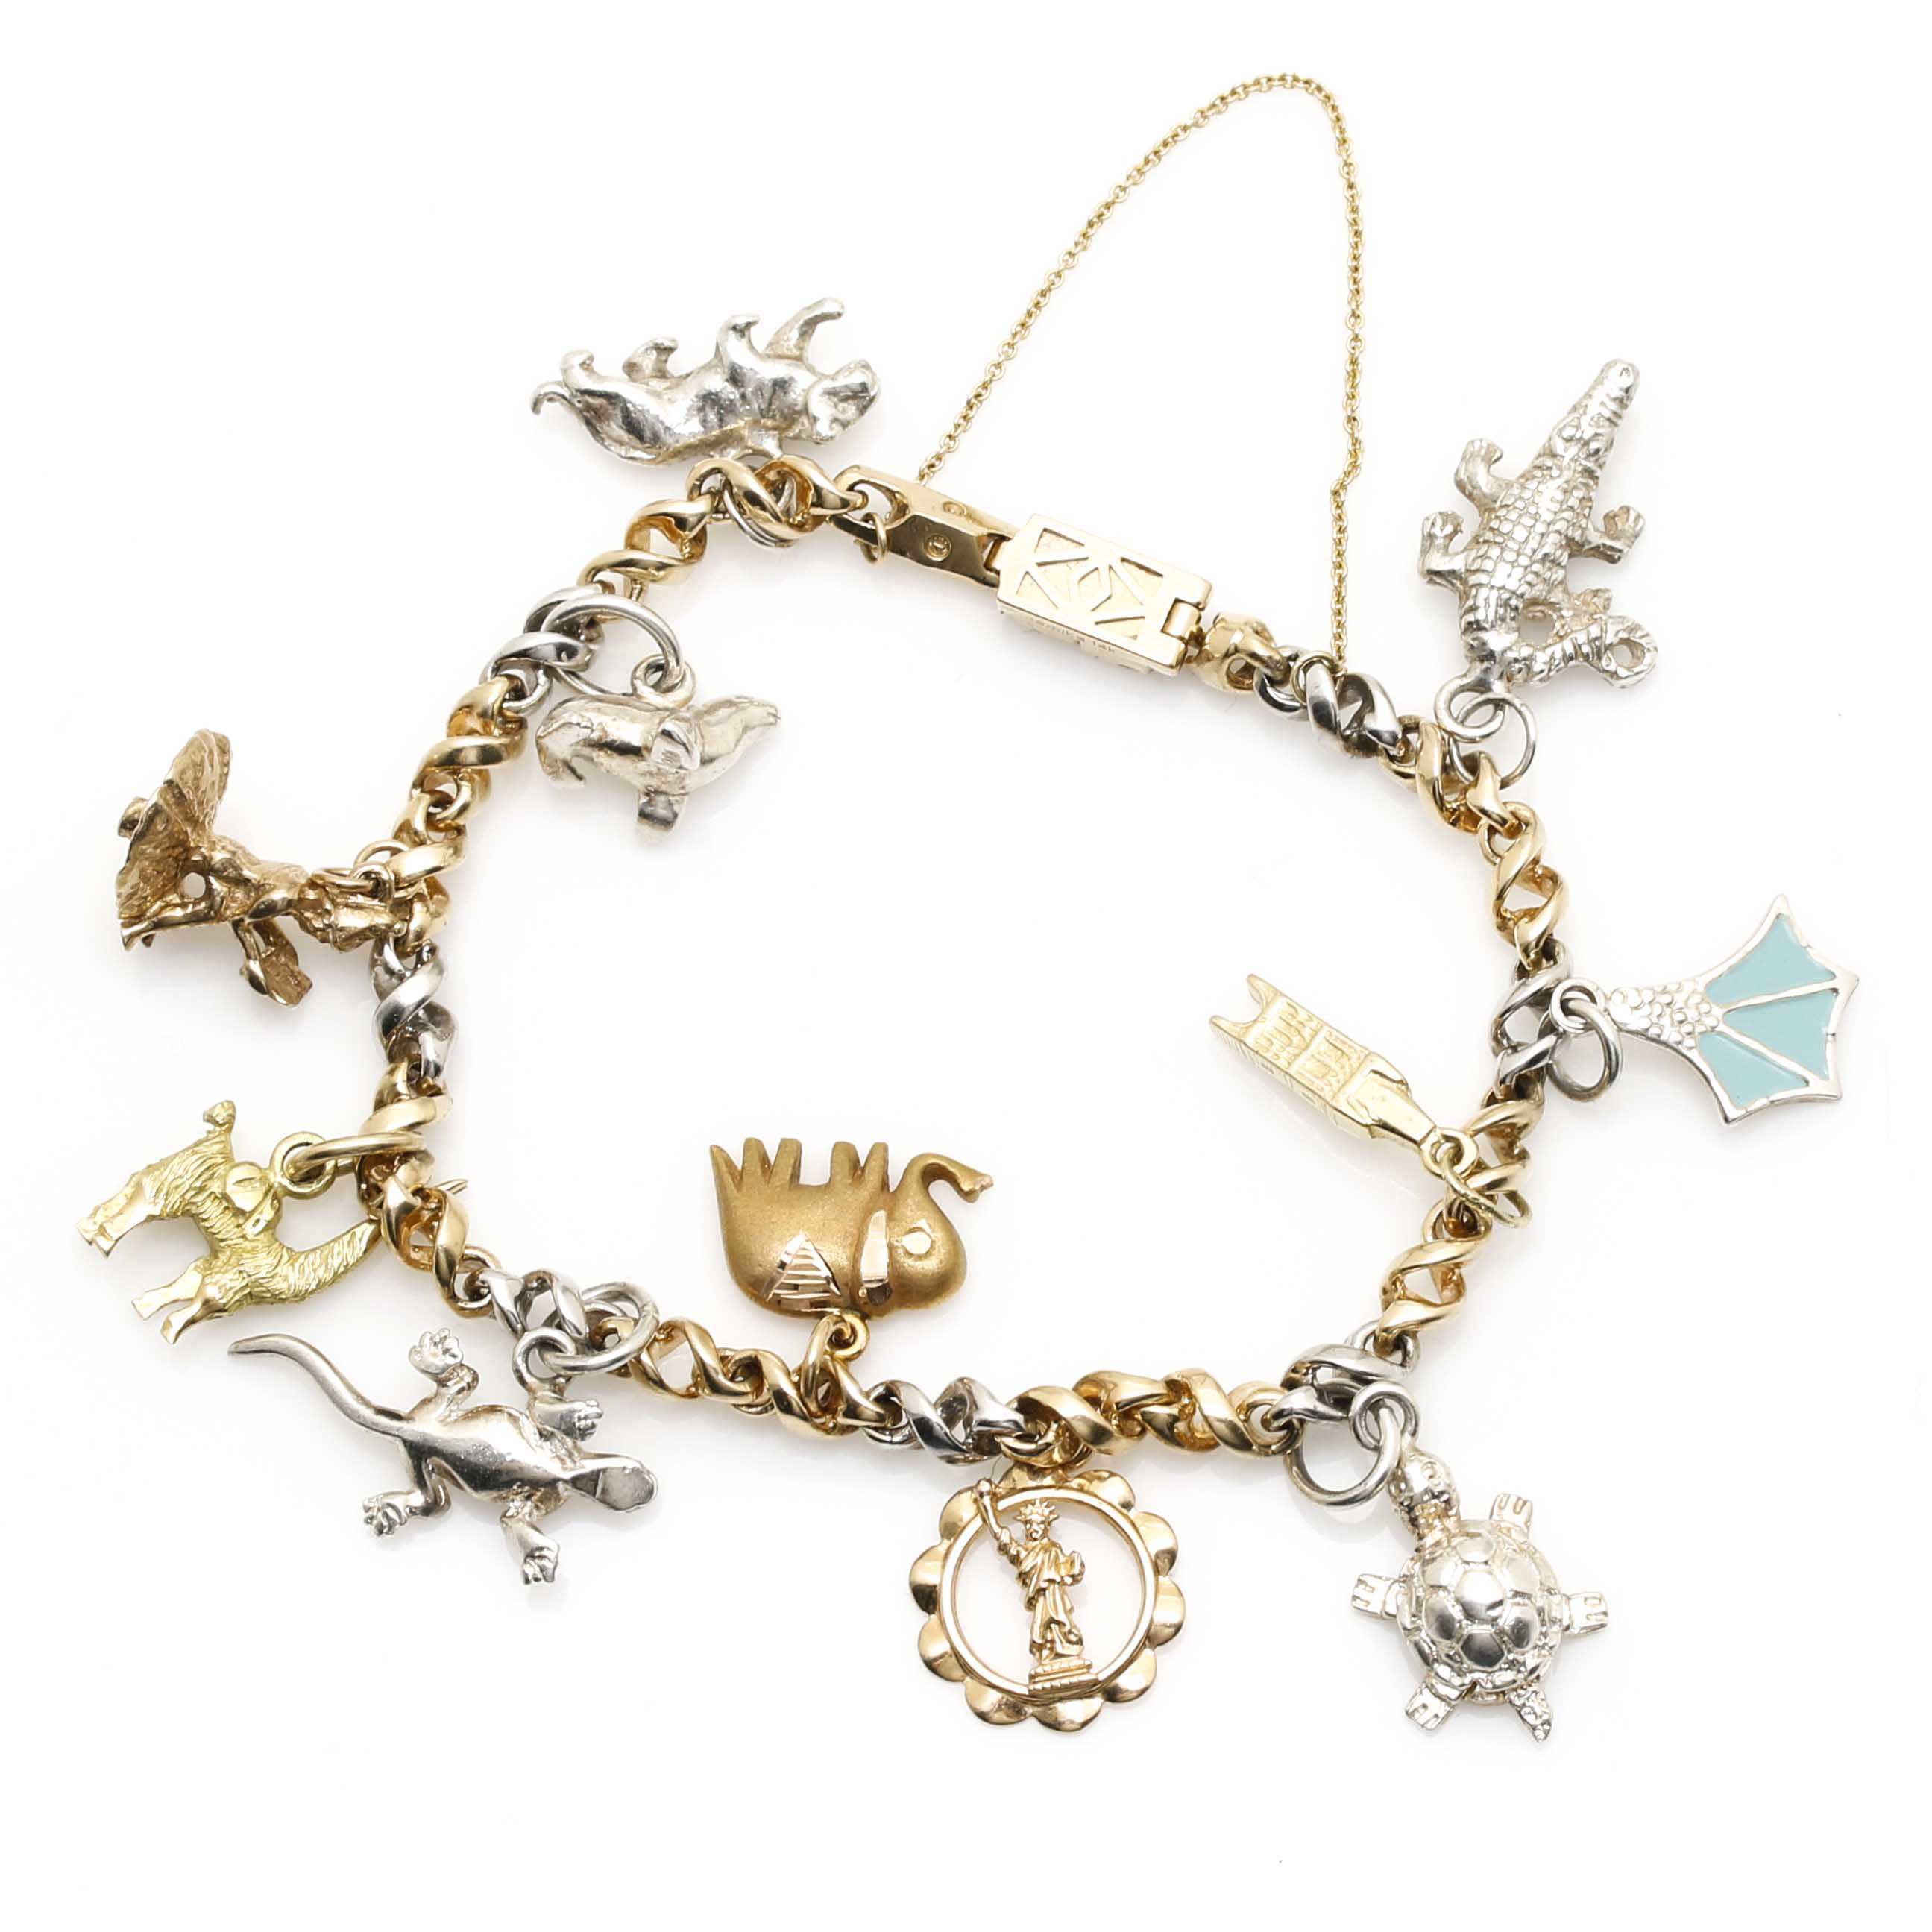 14K Two-Tone Gold Charm Bracelet With Mixed Metal Charms